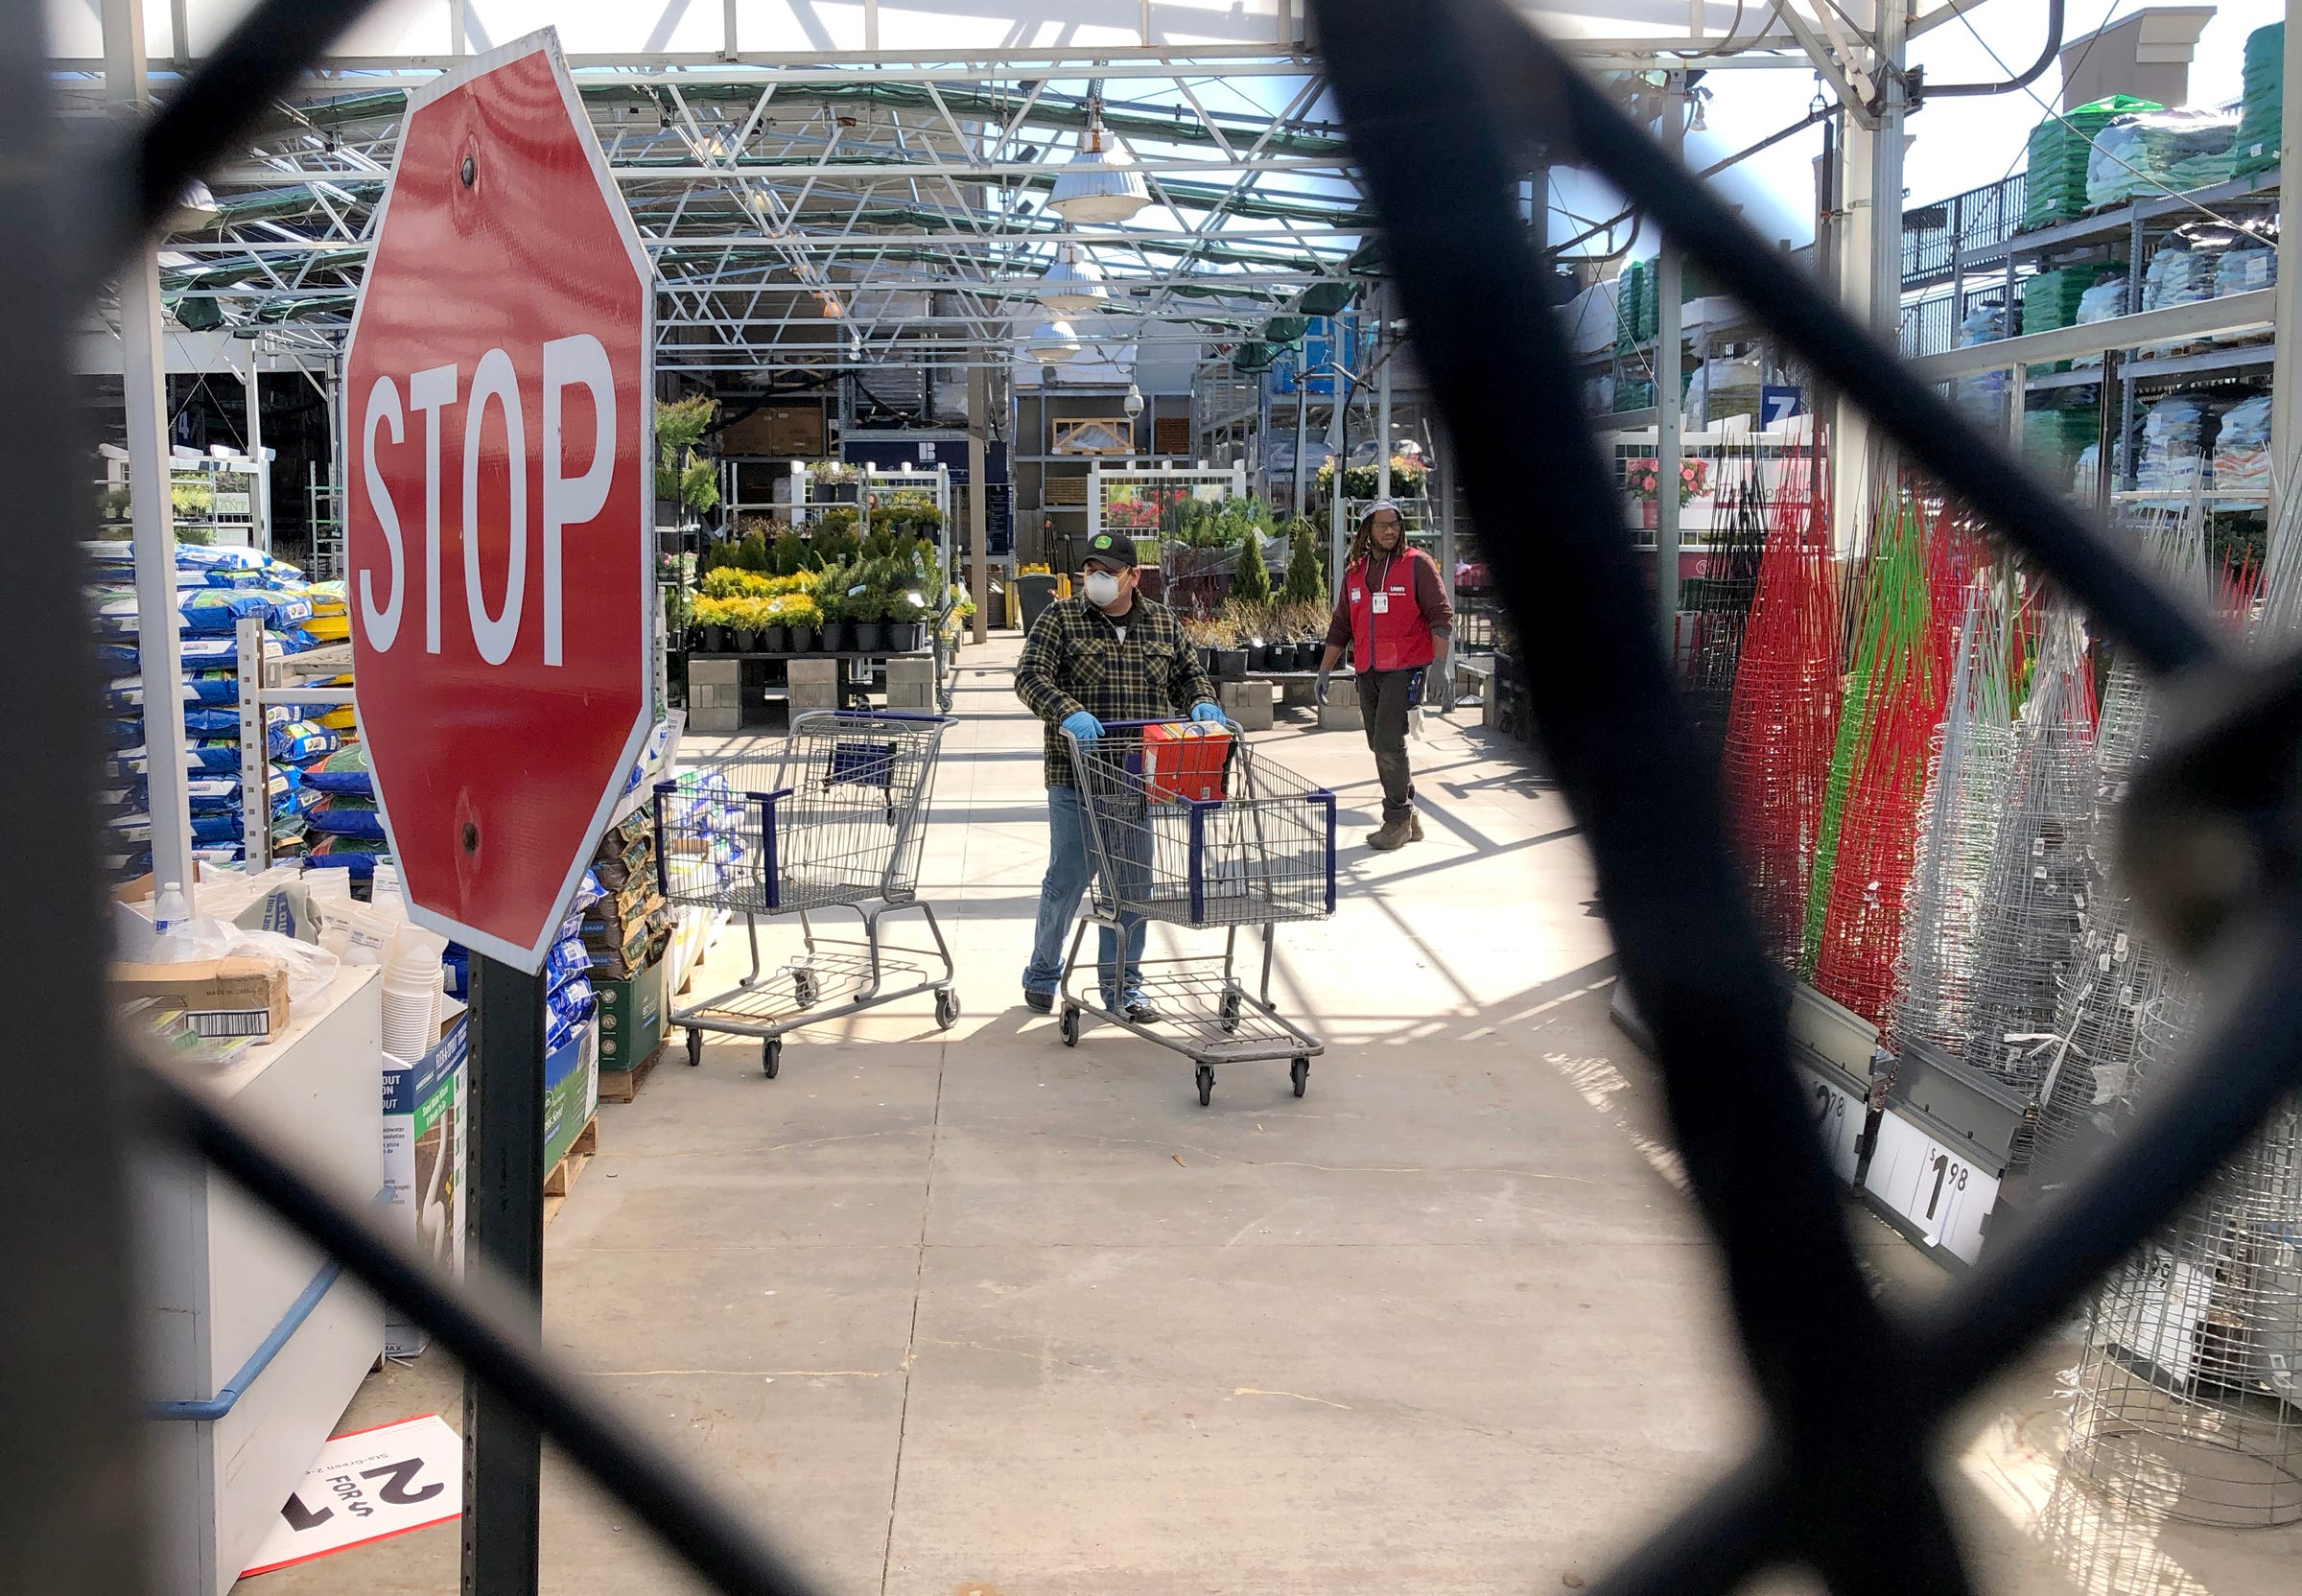 At this Lowe's on Metro Parkway in Sterling Heights, Michigan, on April 2, 2020, the outside entrance of the garden center was closed to shoppers but shoppers could enter through the inside of the store.